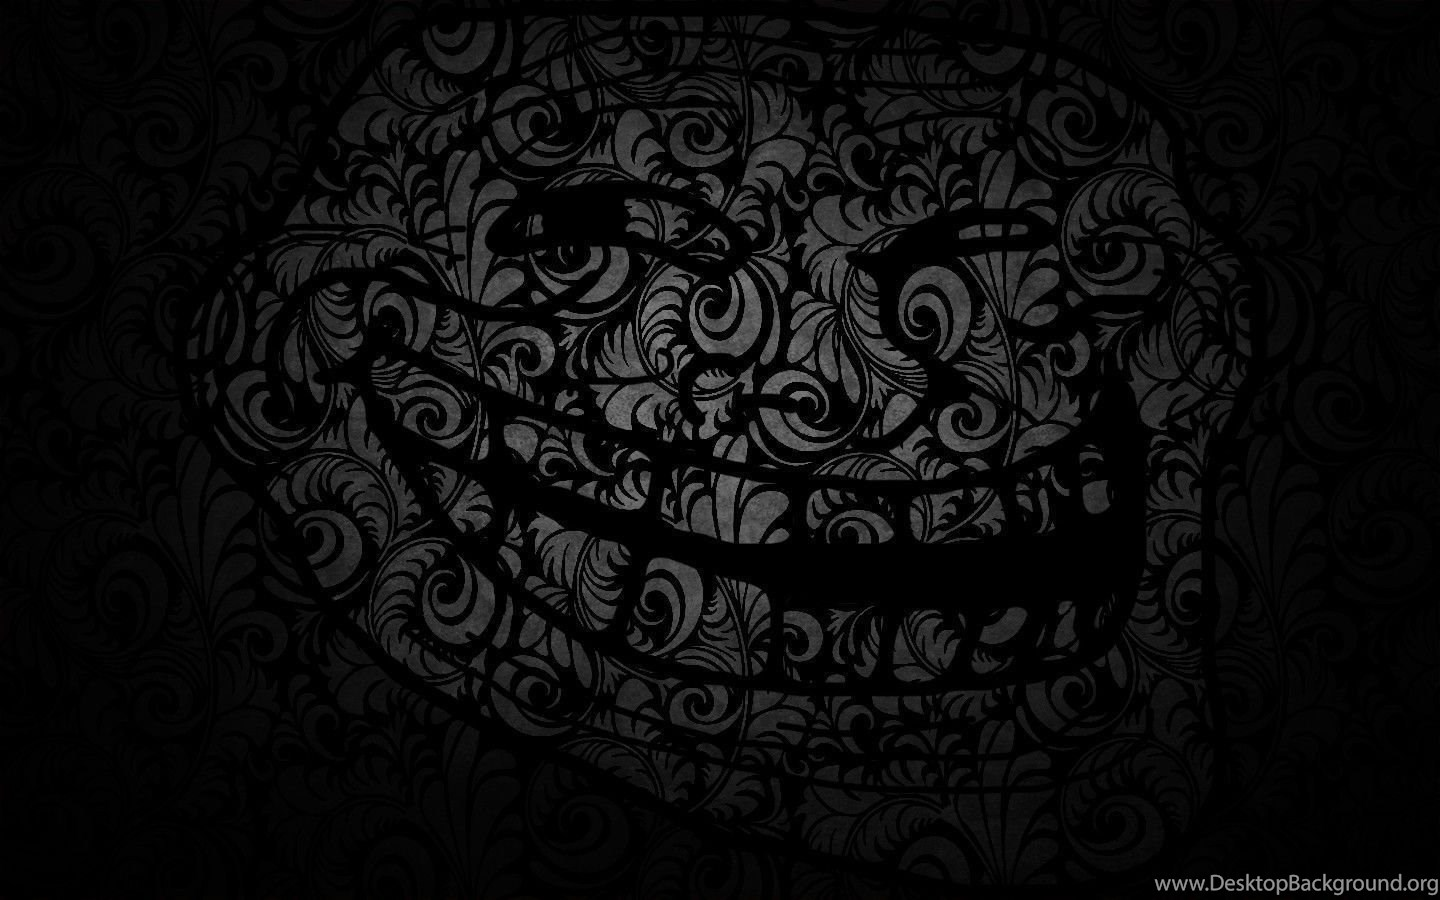 Download coolface trollface wallpapers 1280x1024 desktop background widescreen voltagebd Image collections